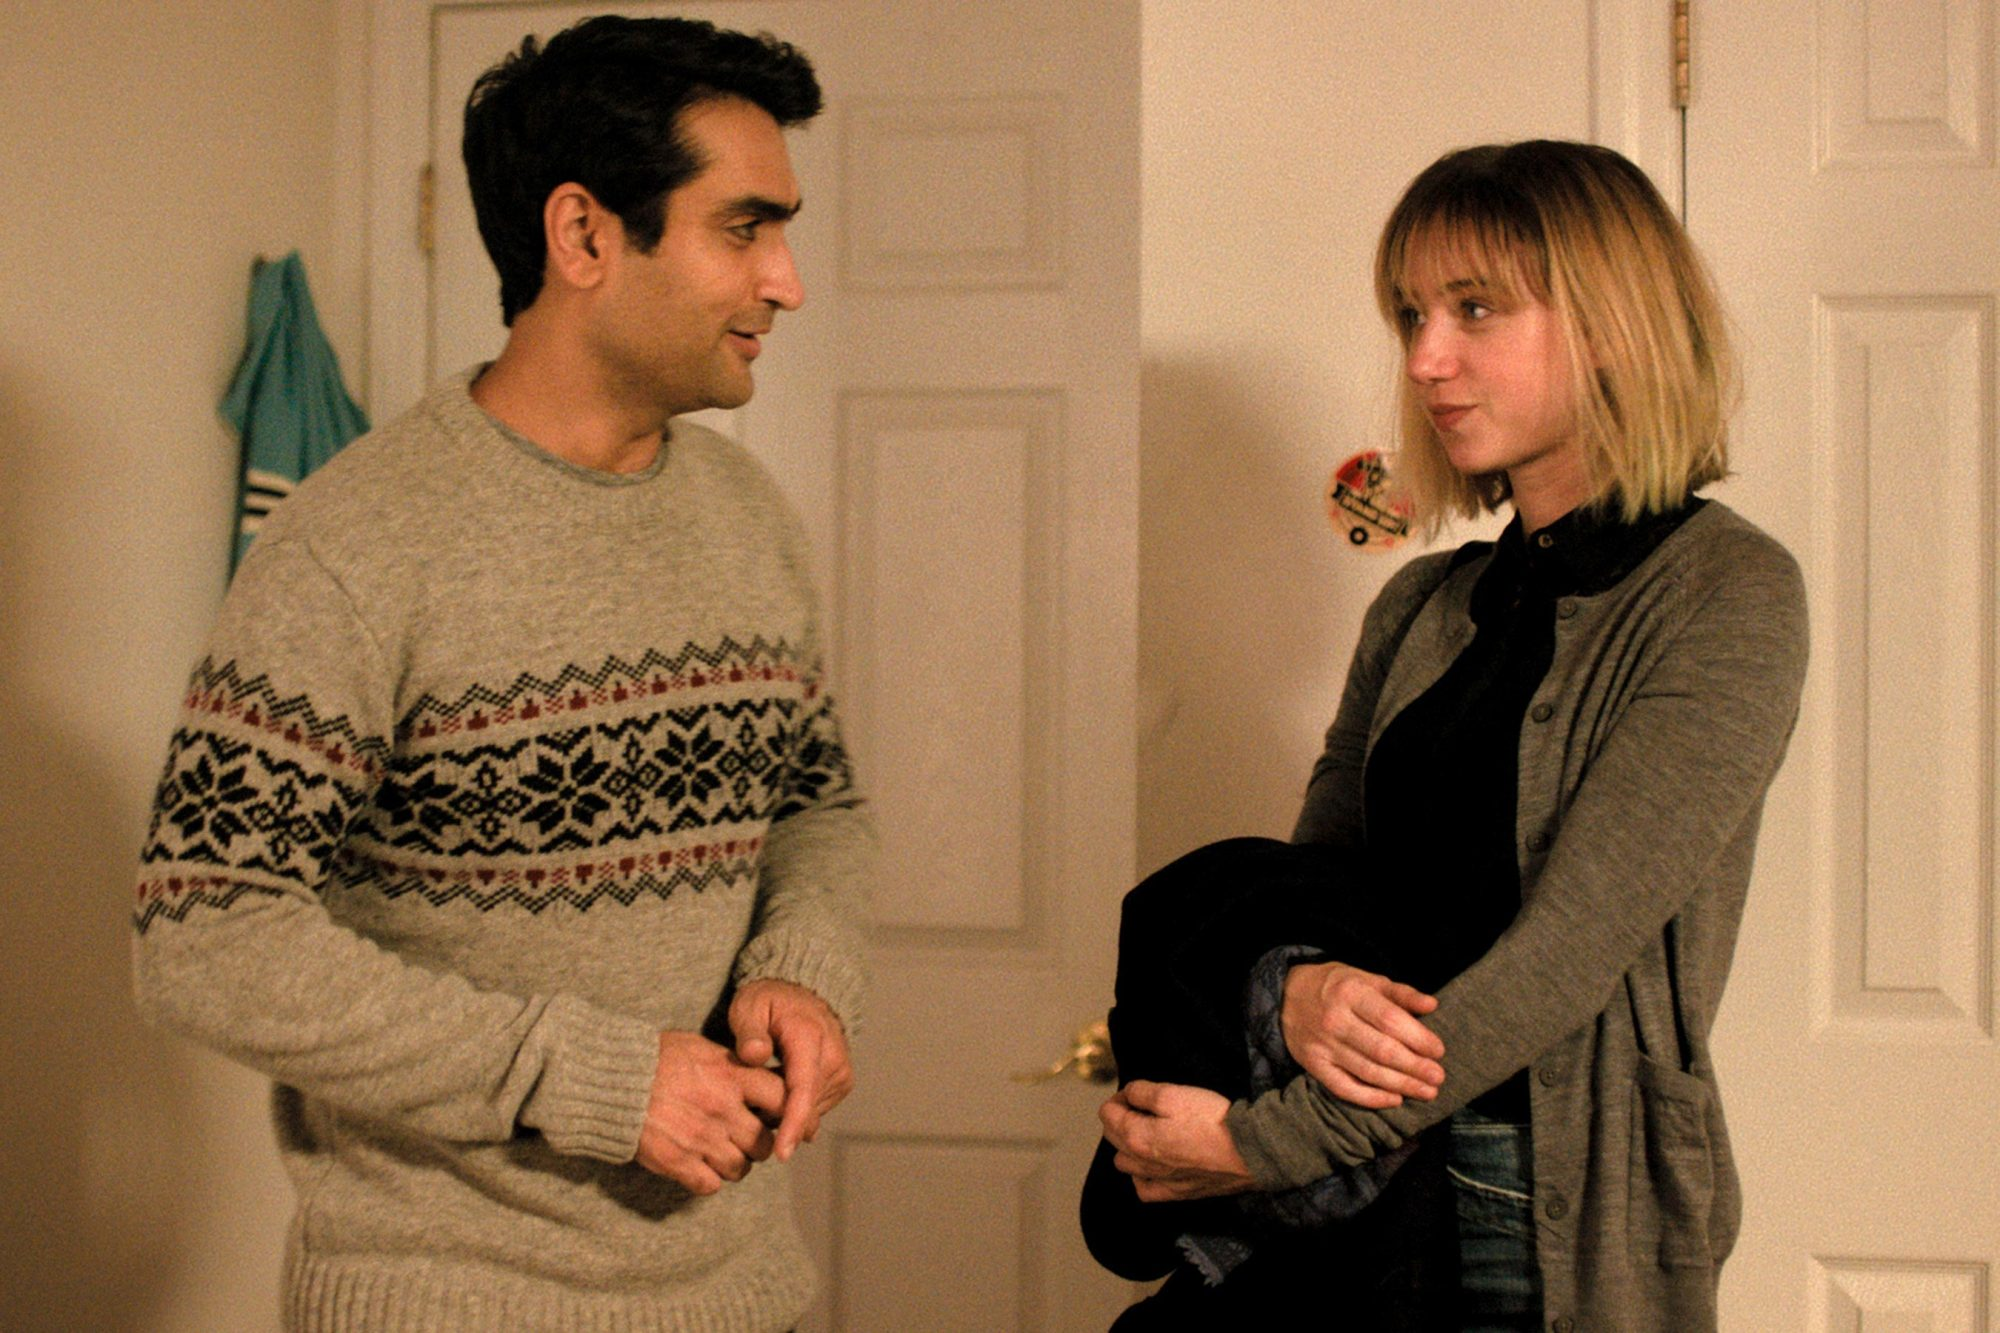 The Big Sick (2017)Kumail (Kumail Nanjiani) and Emily (Zoe Kazan)